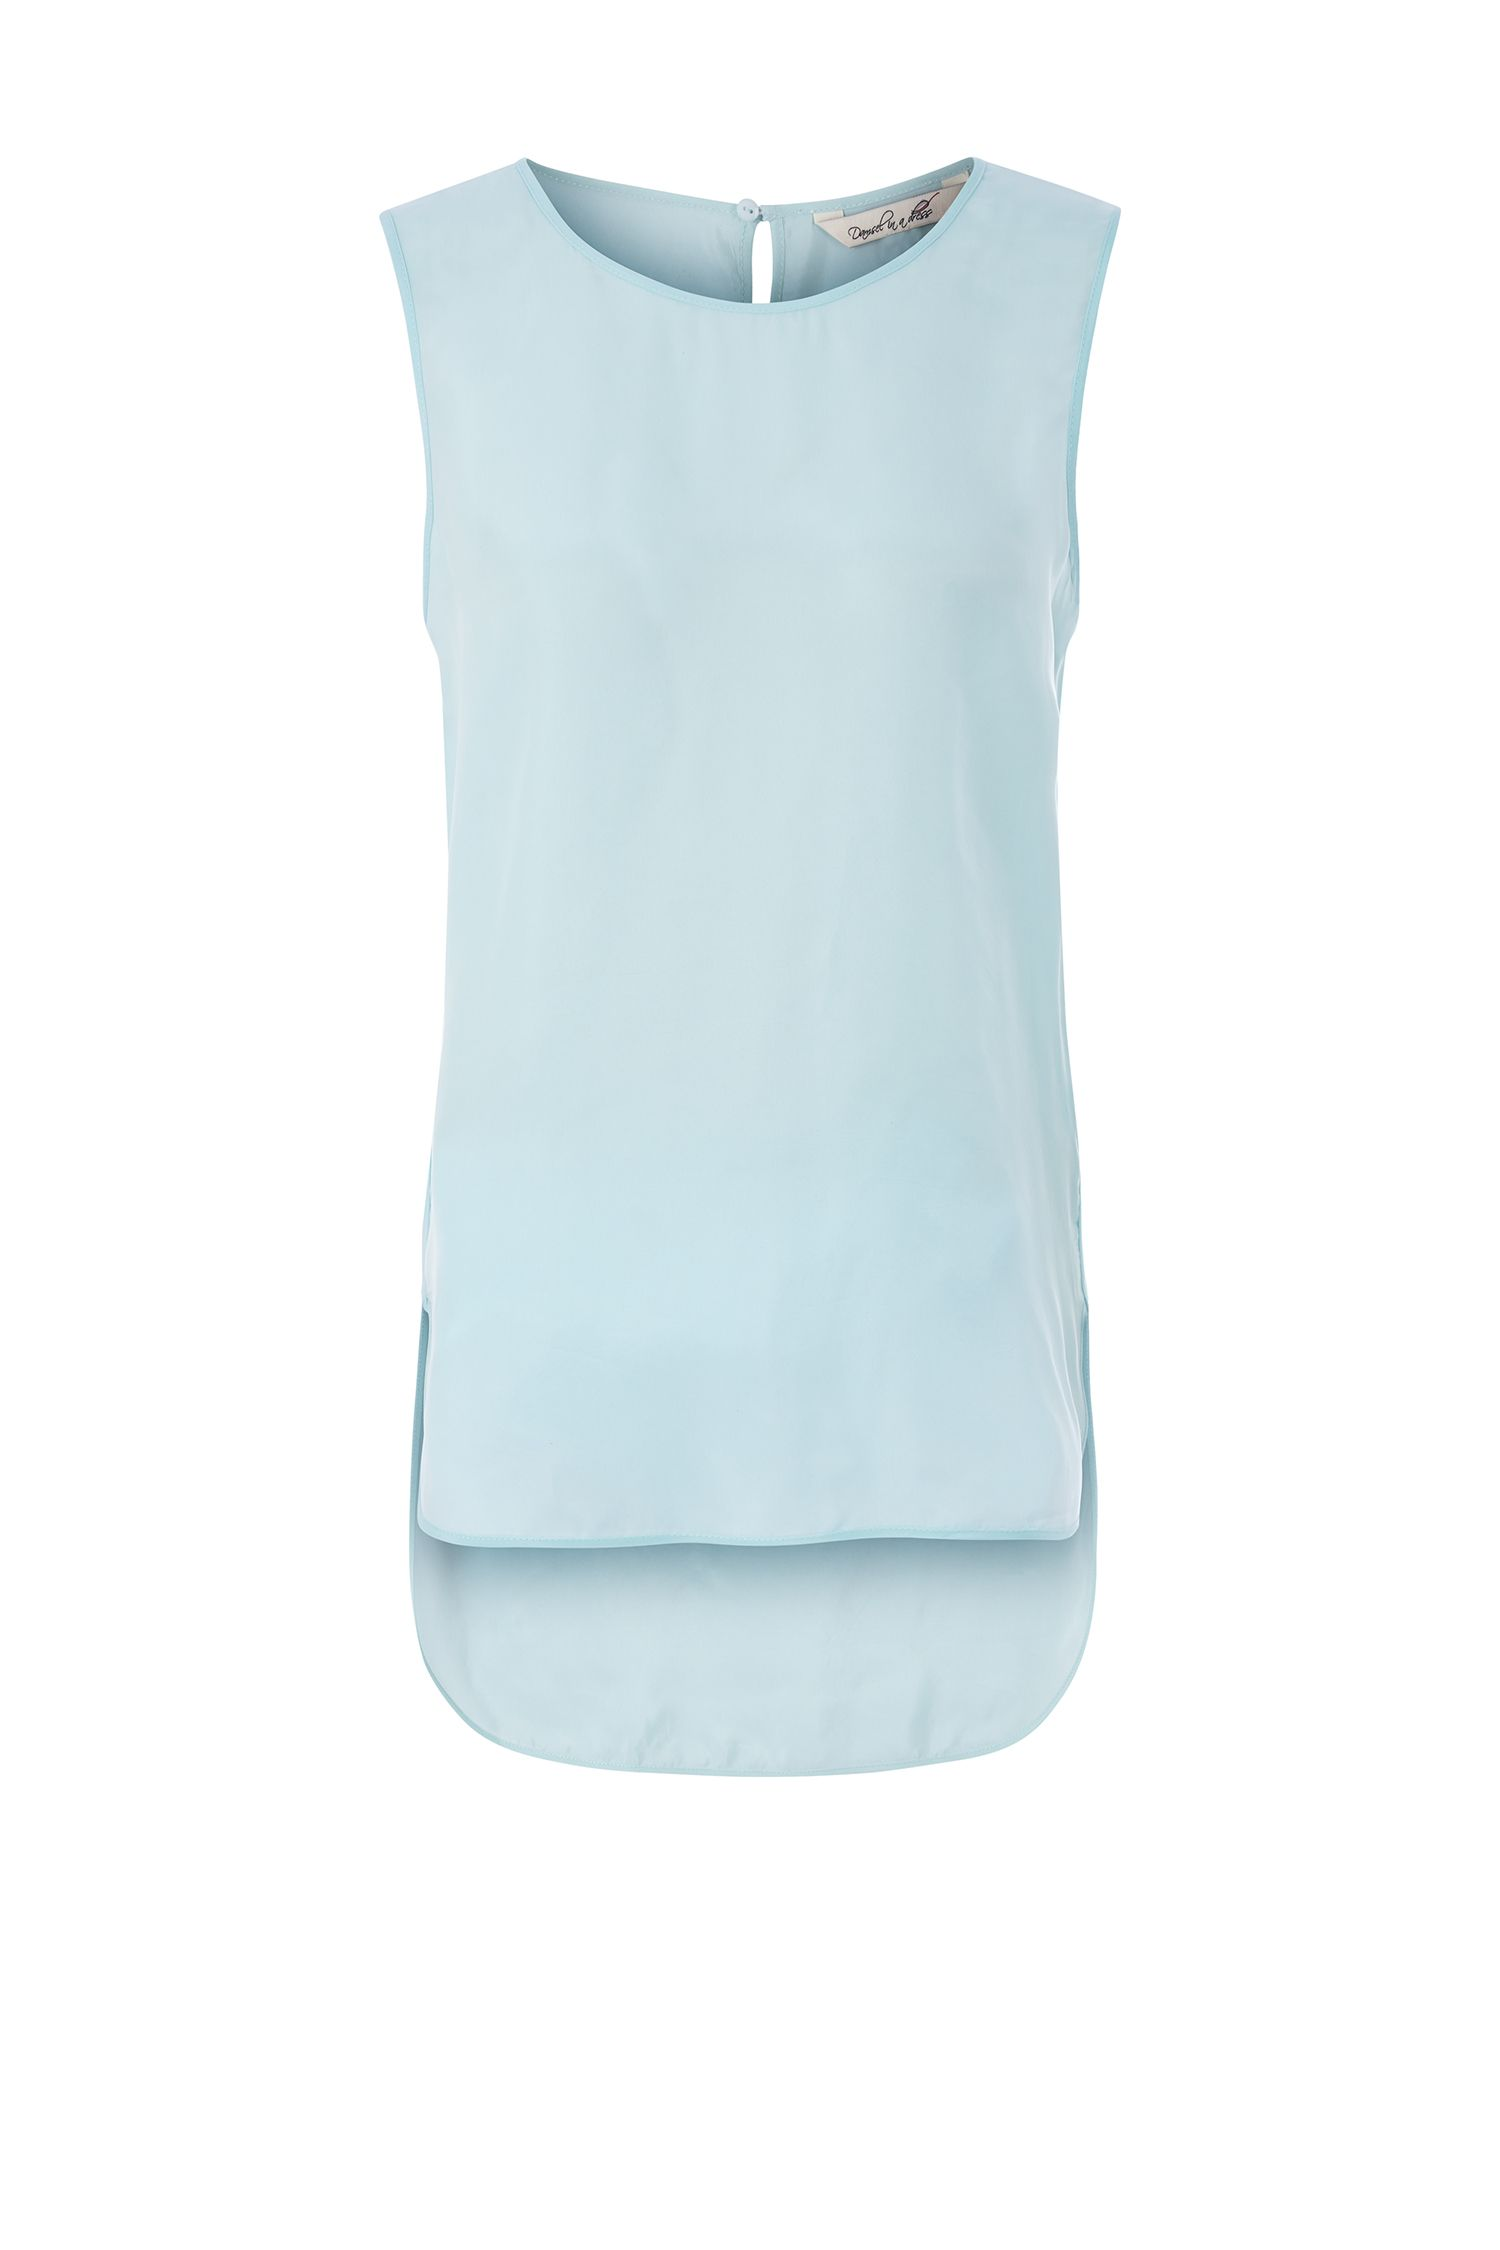 Damsel in a Dress East Hampton Top, Mint